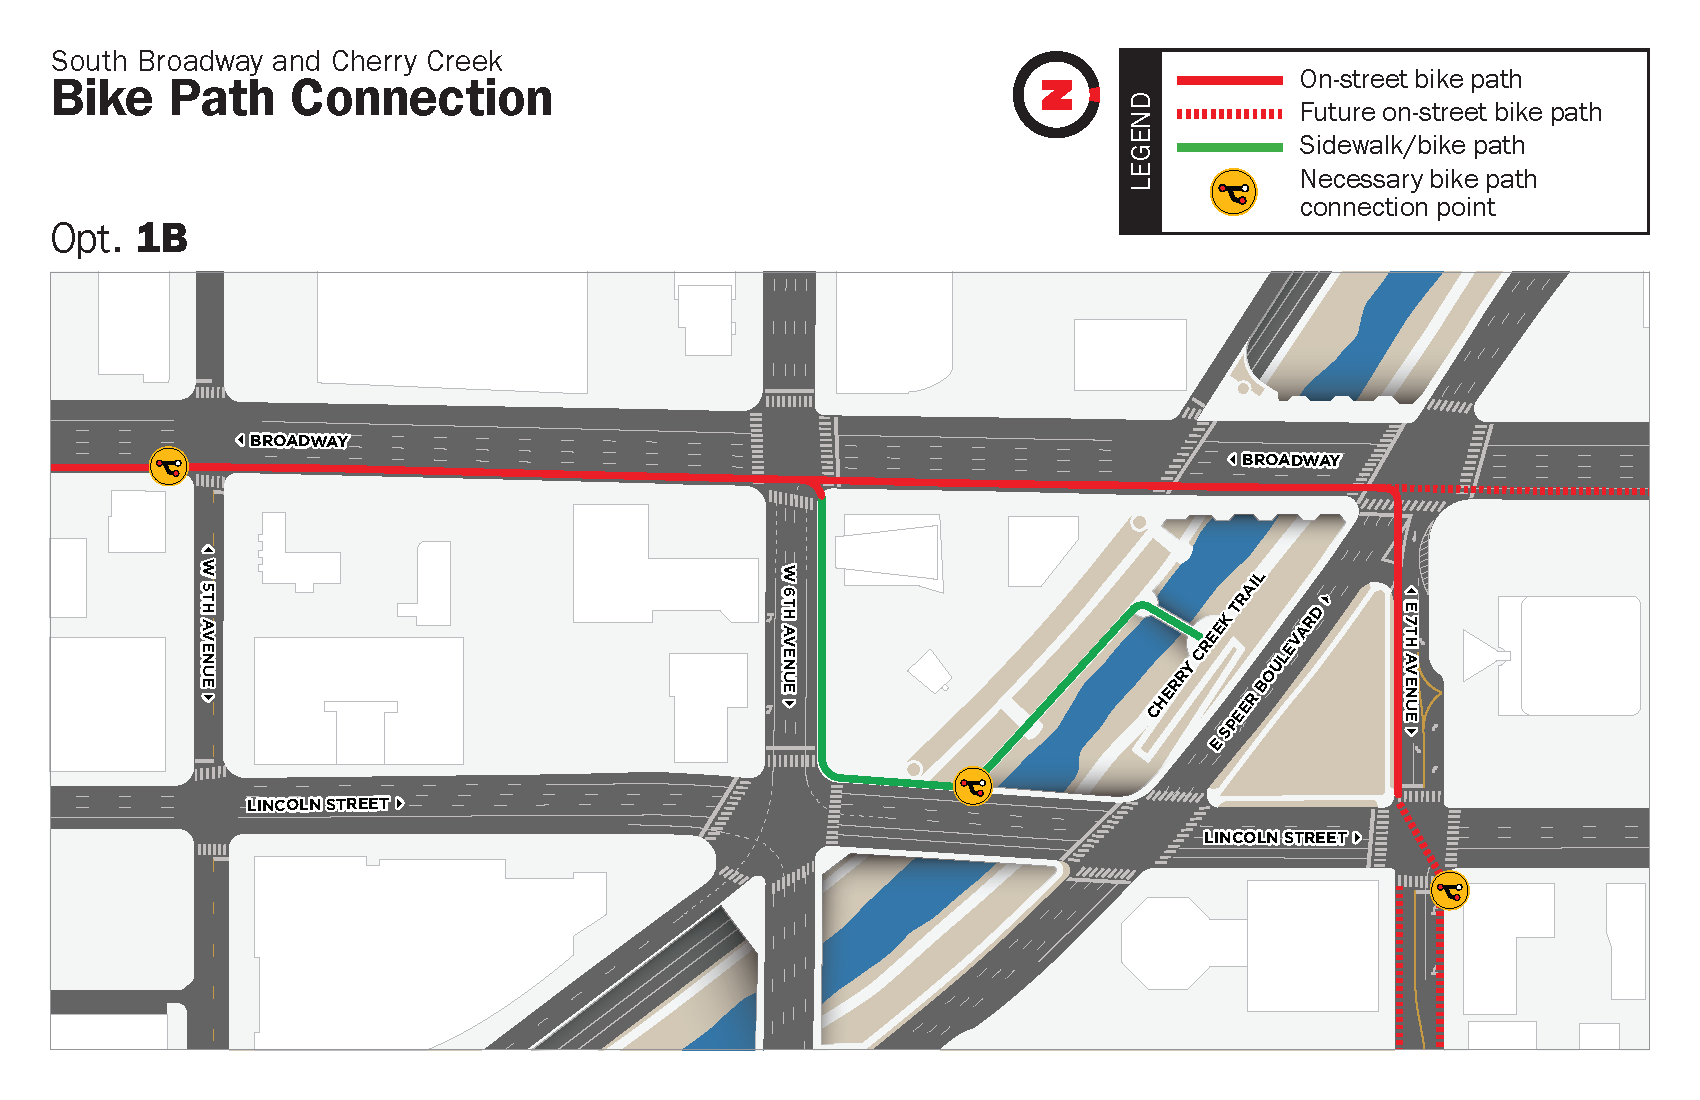 Option 1B: 6th Ave. Connection